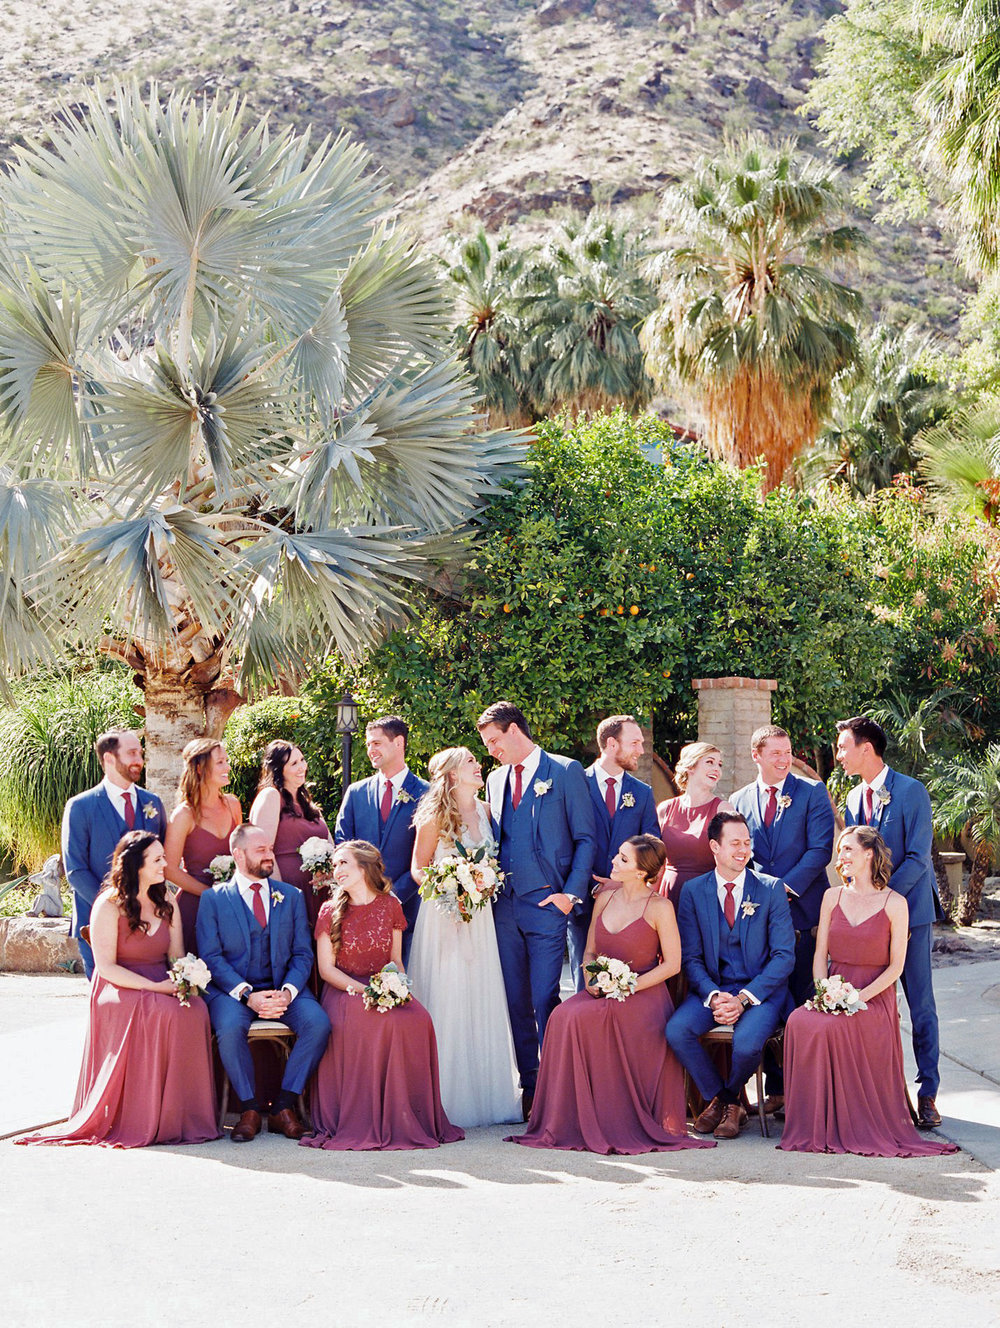 PalmSpringsWeddingPhotographer_RachelSolomonPhotography_Colony29Wedding-24.jpg